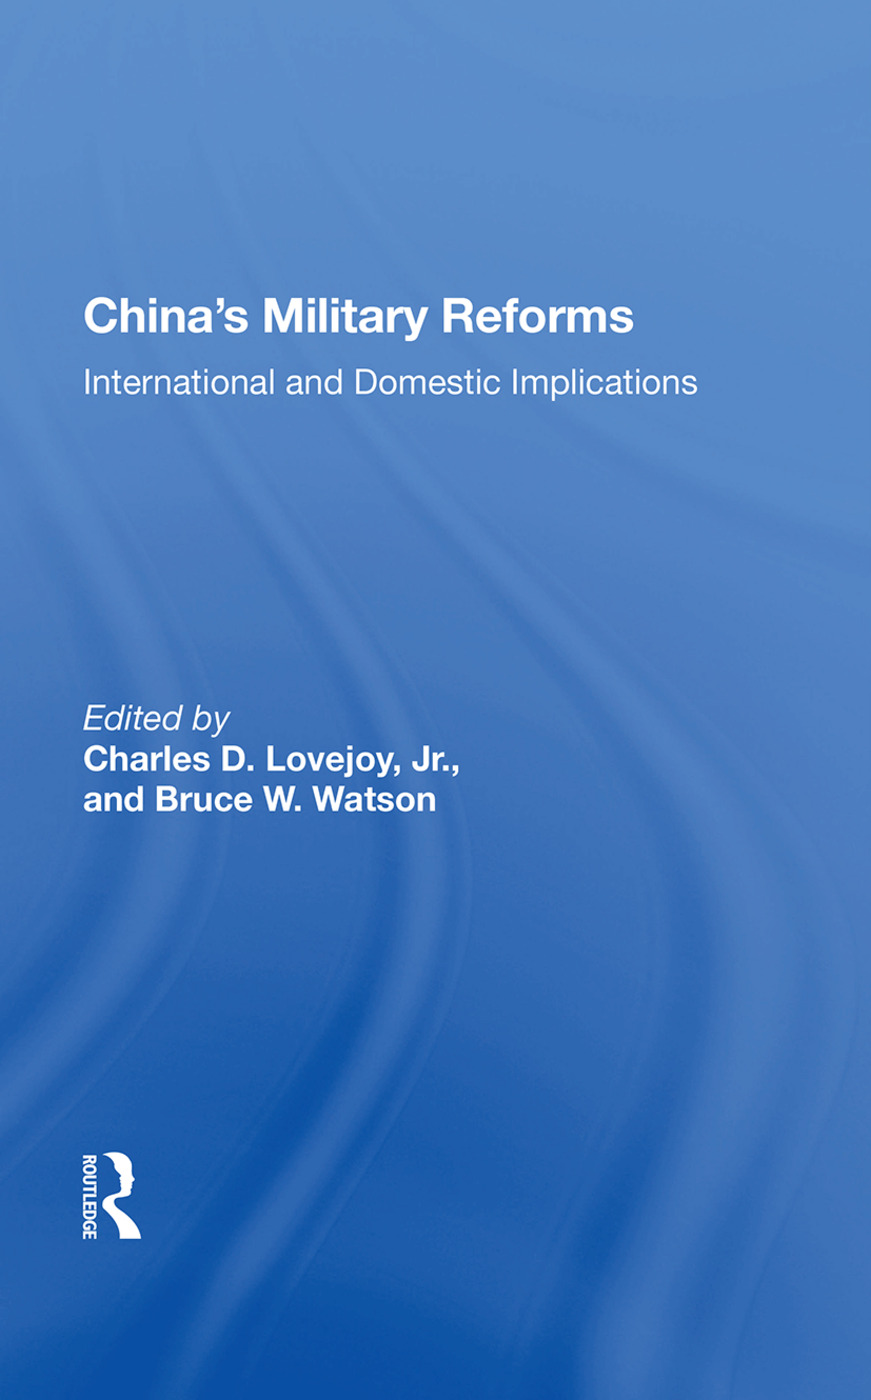 China's Military Reforms